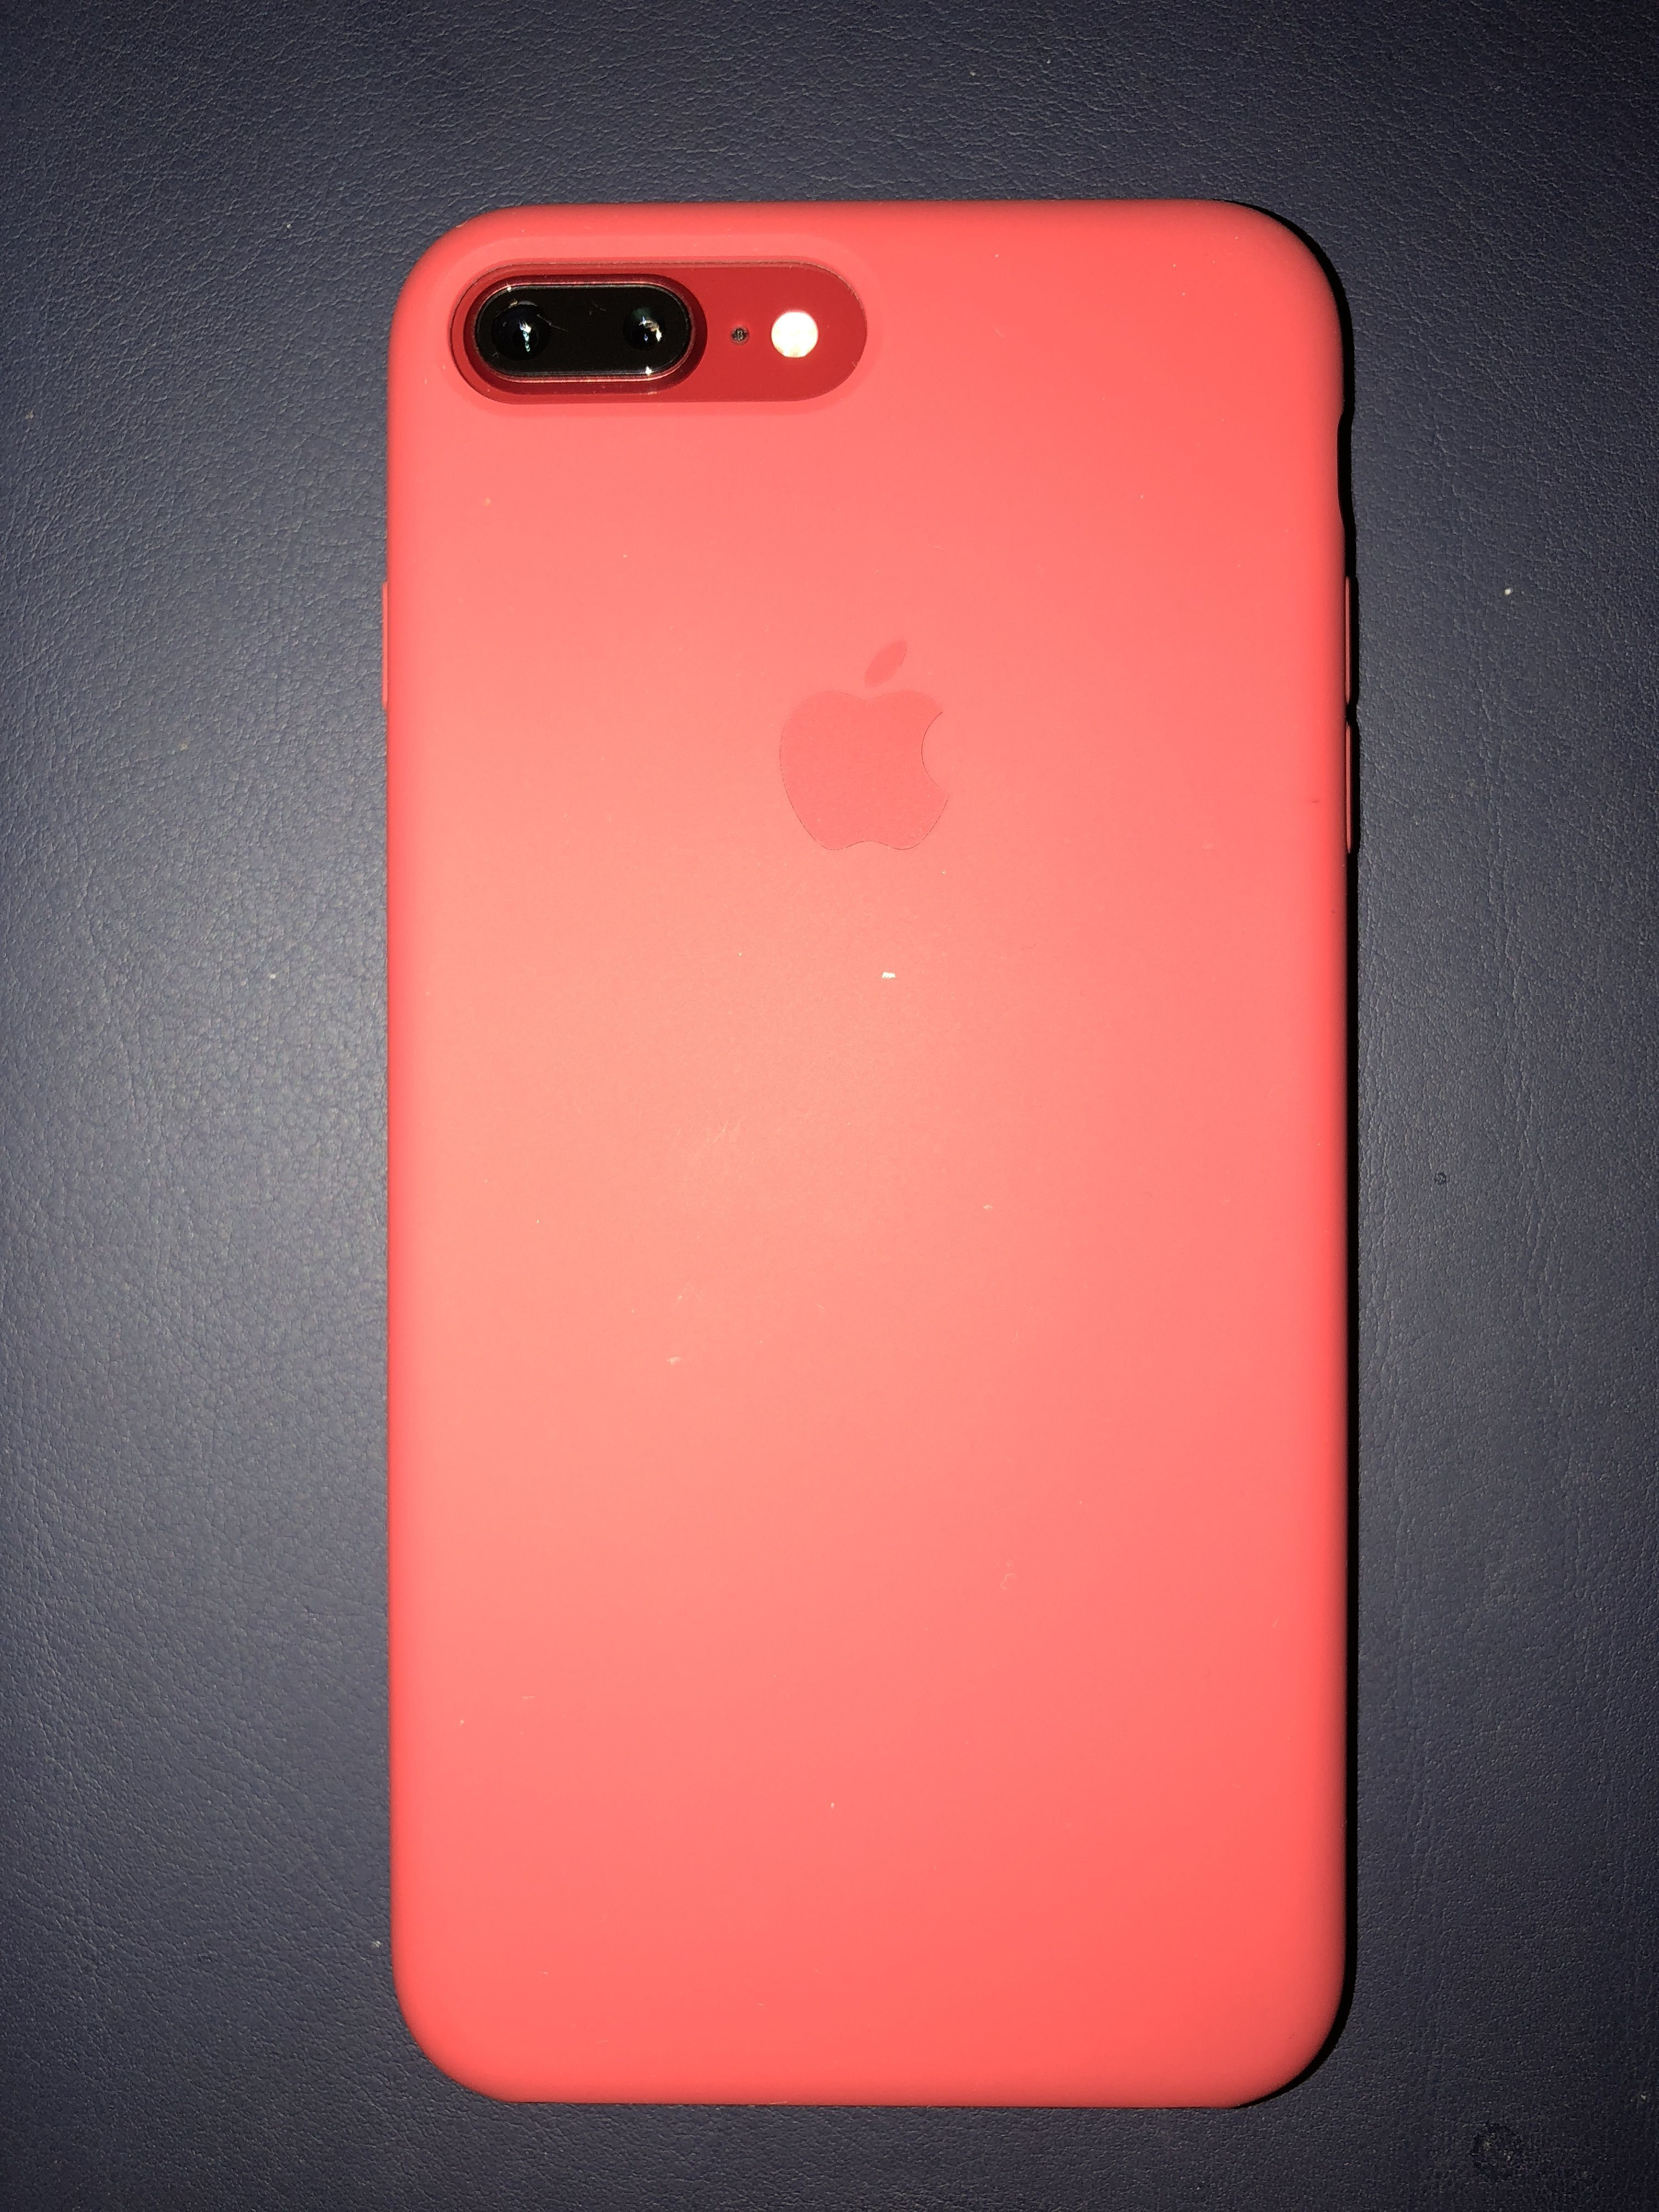 Productrediphone8plus Product Red Iphone 8 Plus With Product Red Silicone Case Iphone7plus Iphone Phone Cases Red Iphone Case Unicorn Iphone Case